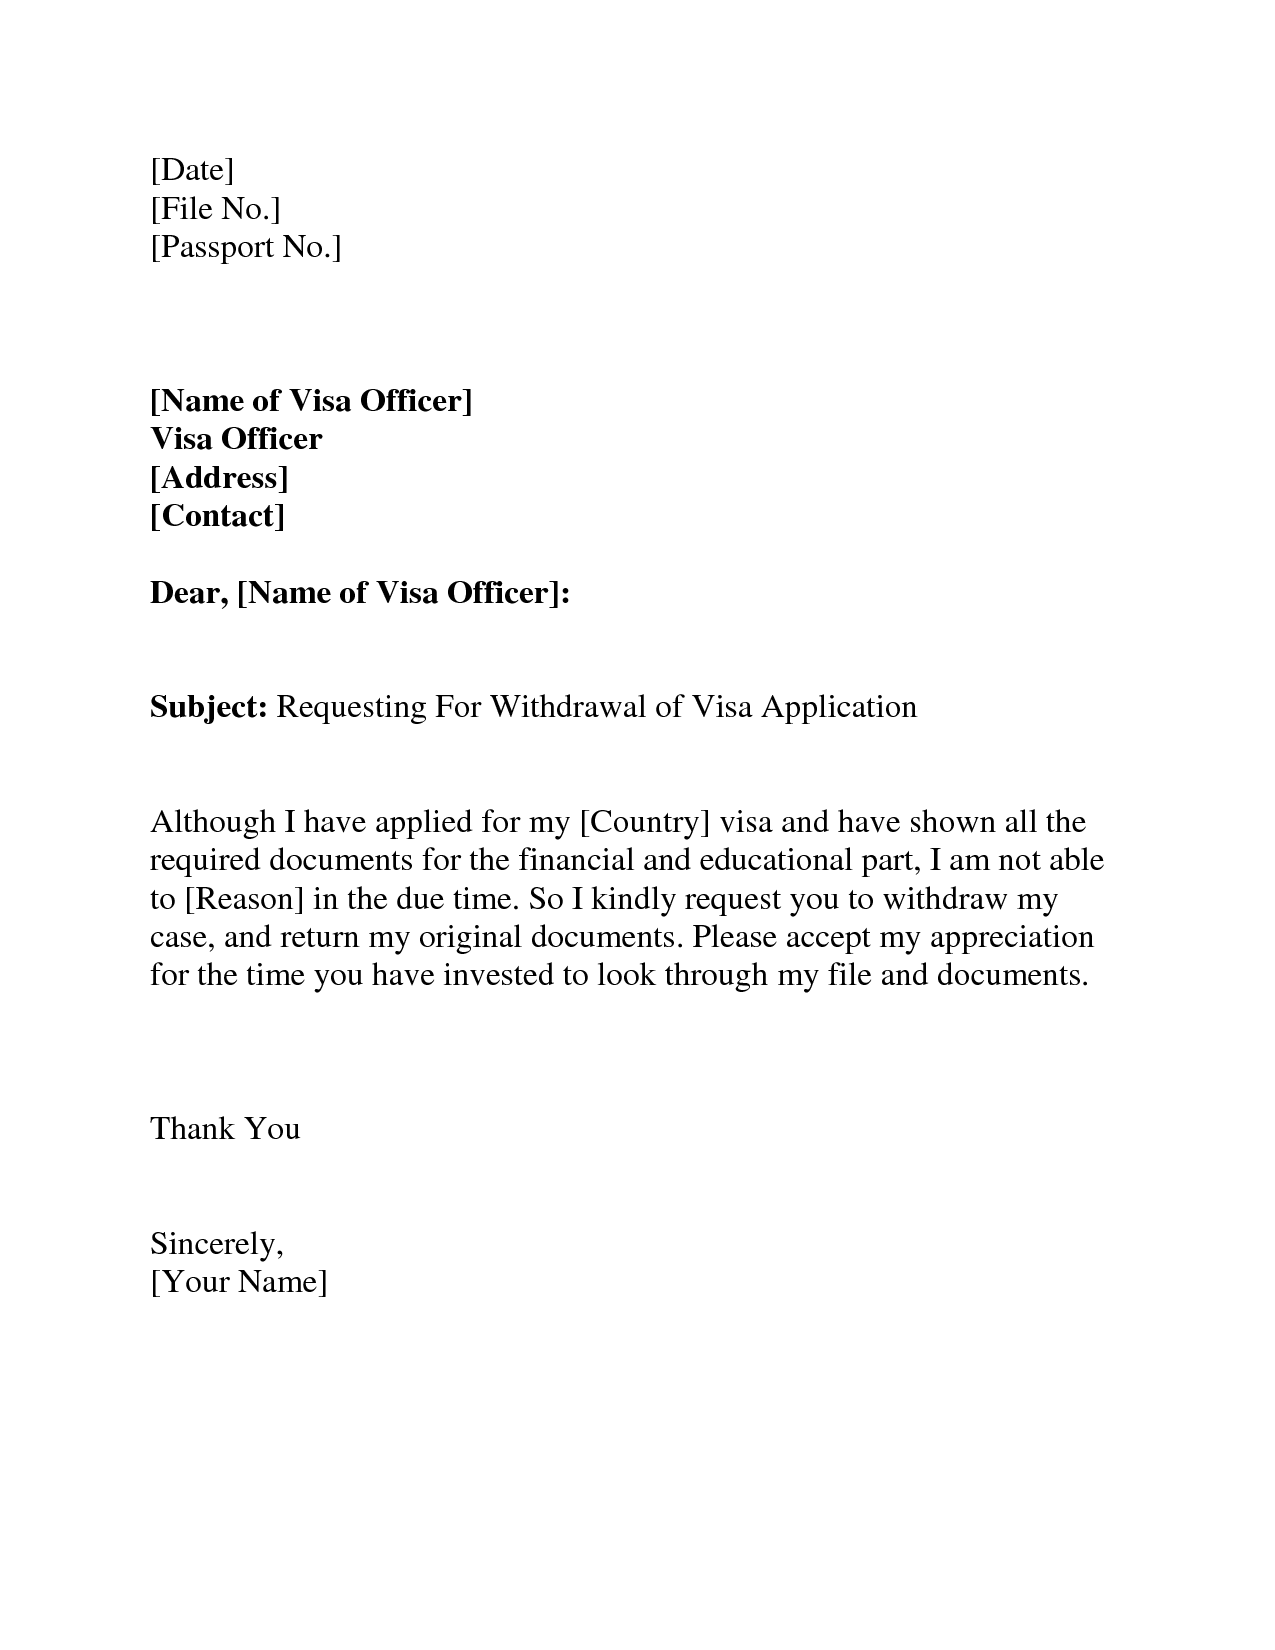 cover letter visa application australia write on notebook papervisa application letter application letter sample - Sample Of Cover Letter For Visa Application